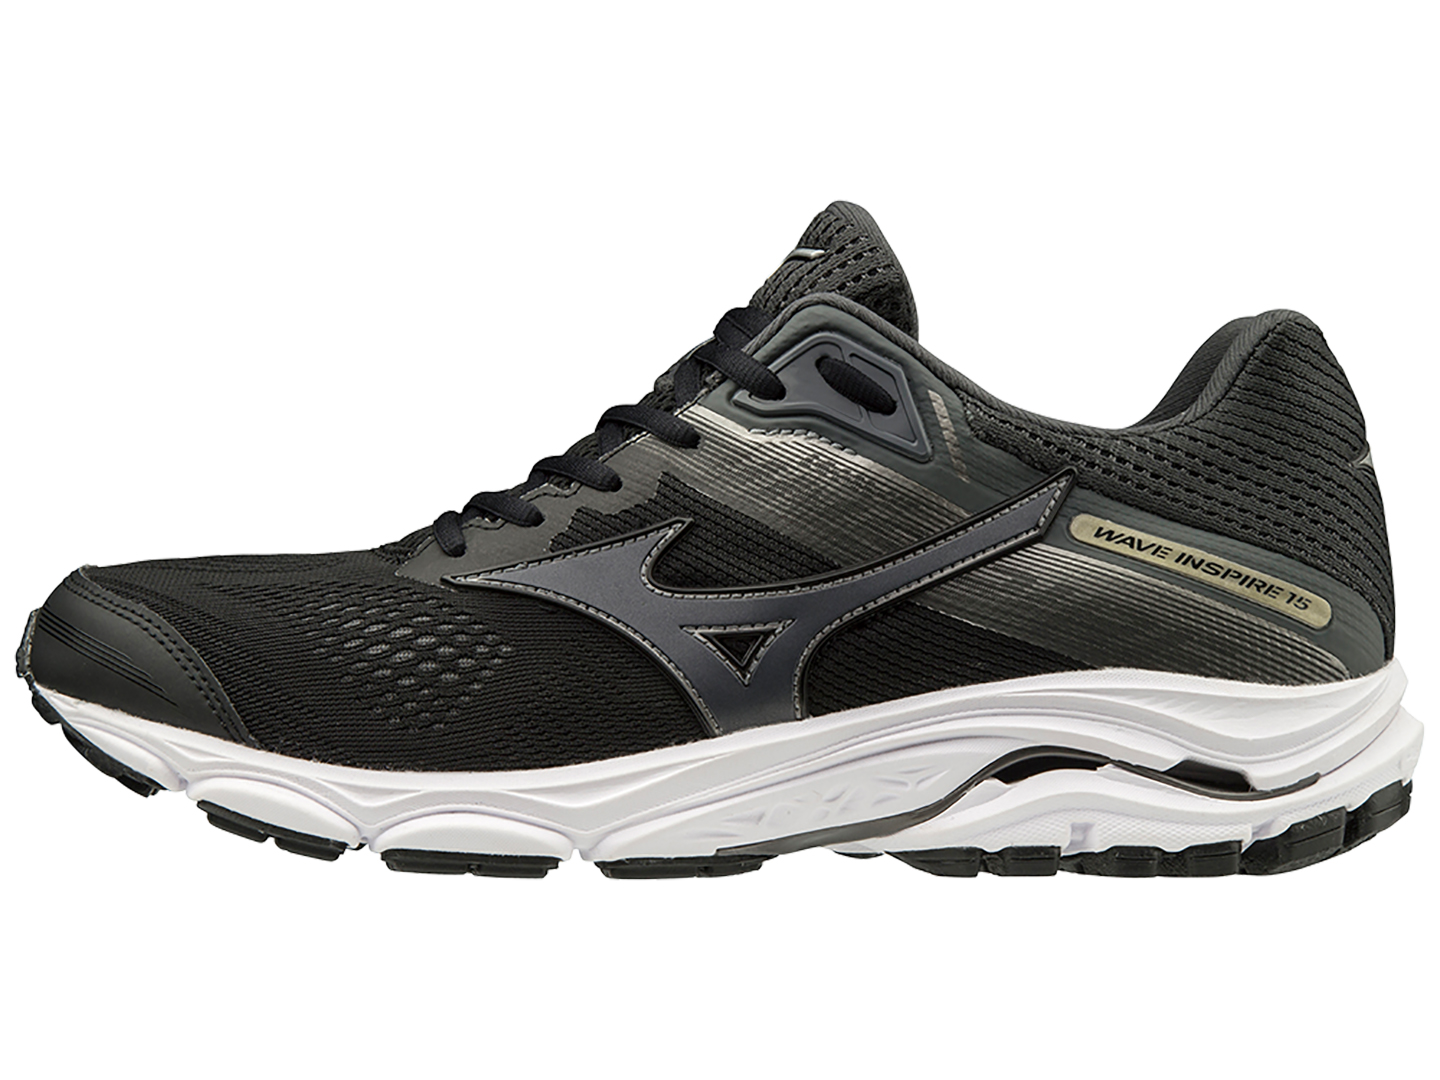 Mizuno Wave Inspire 15 Shoes | Shoes and overlays